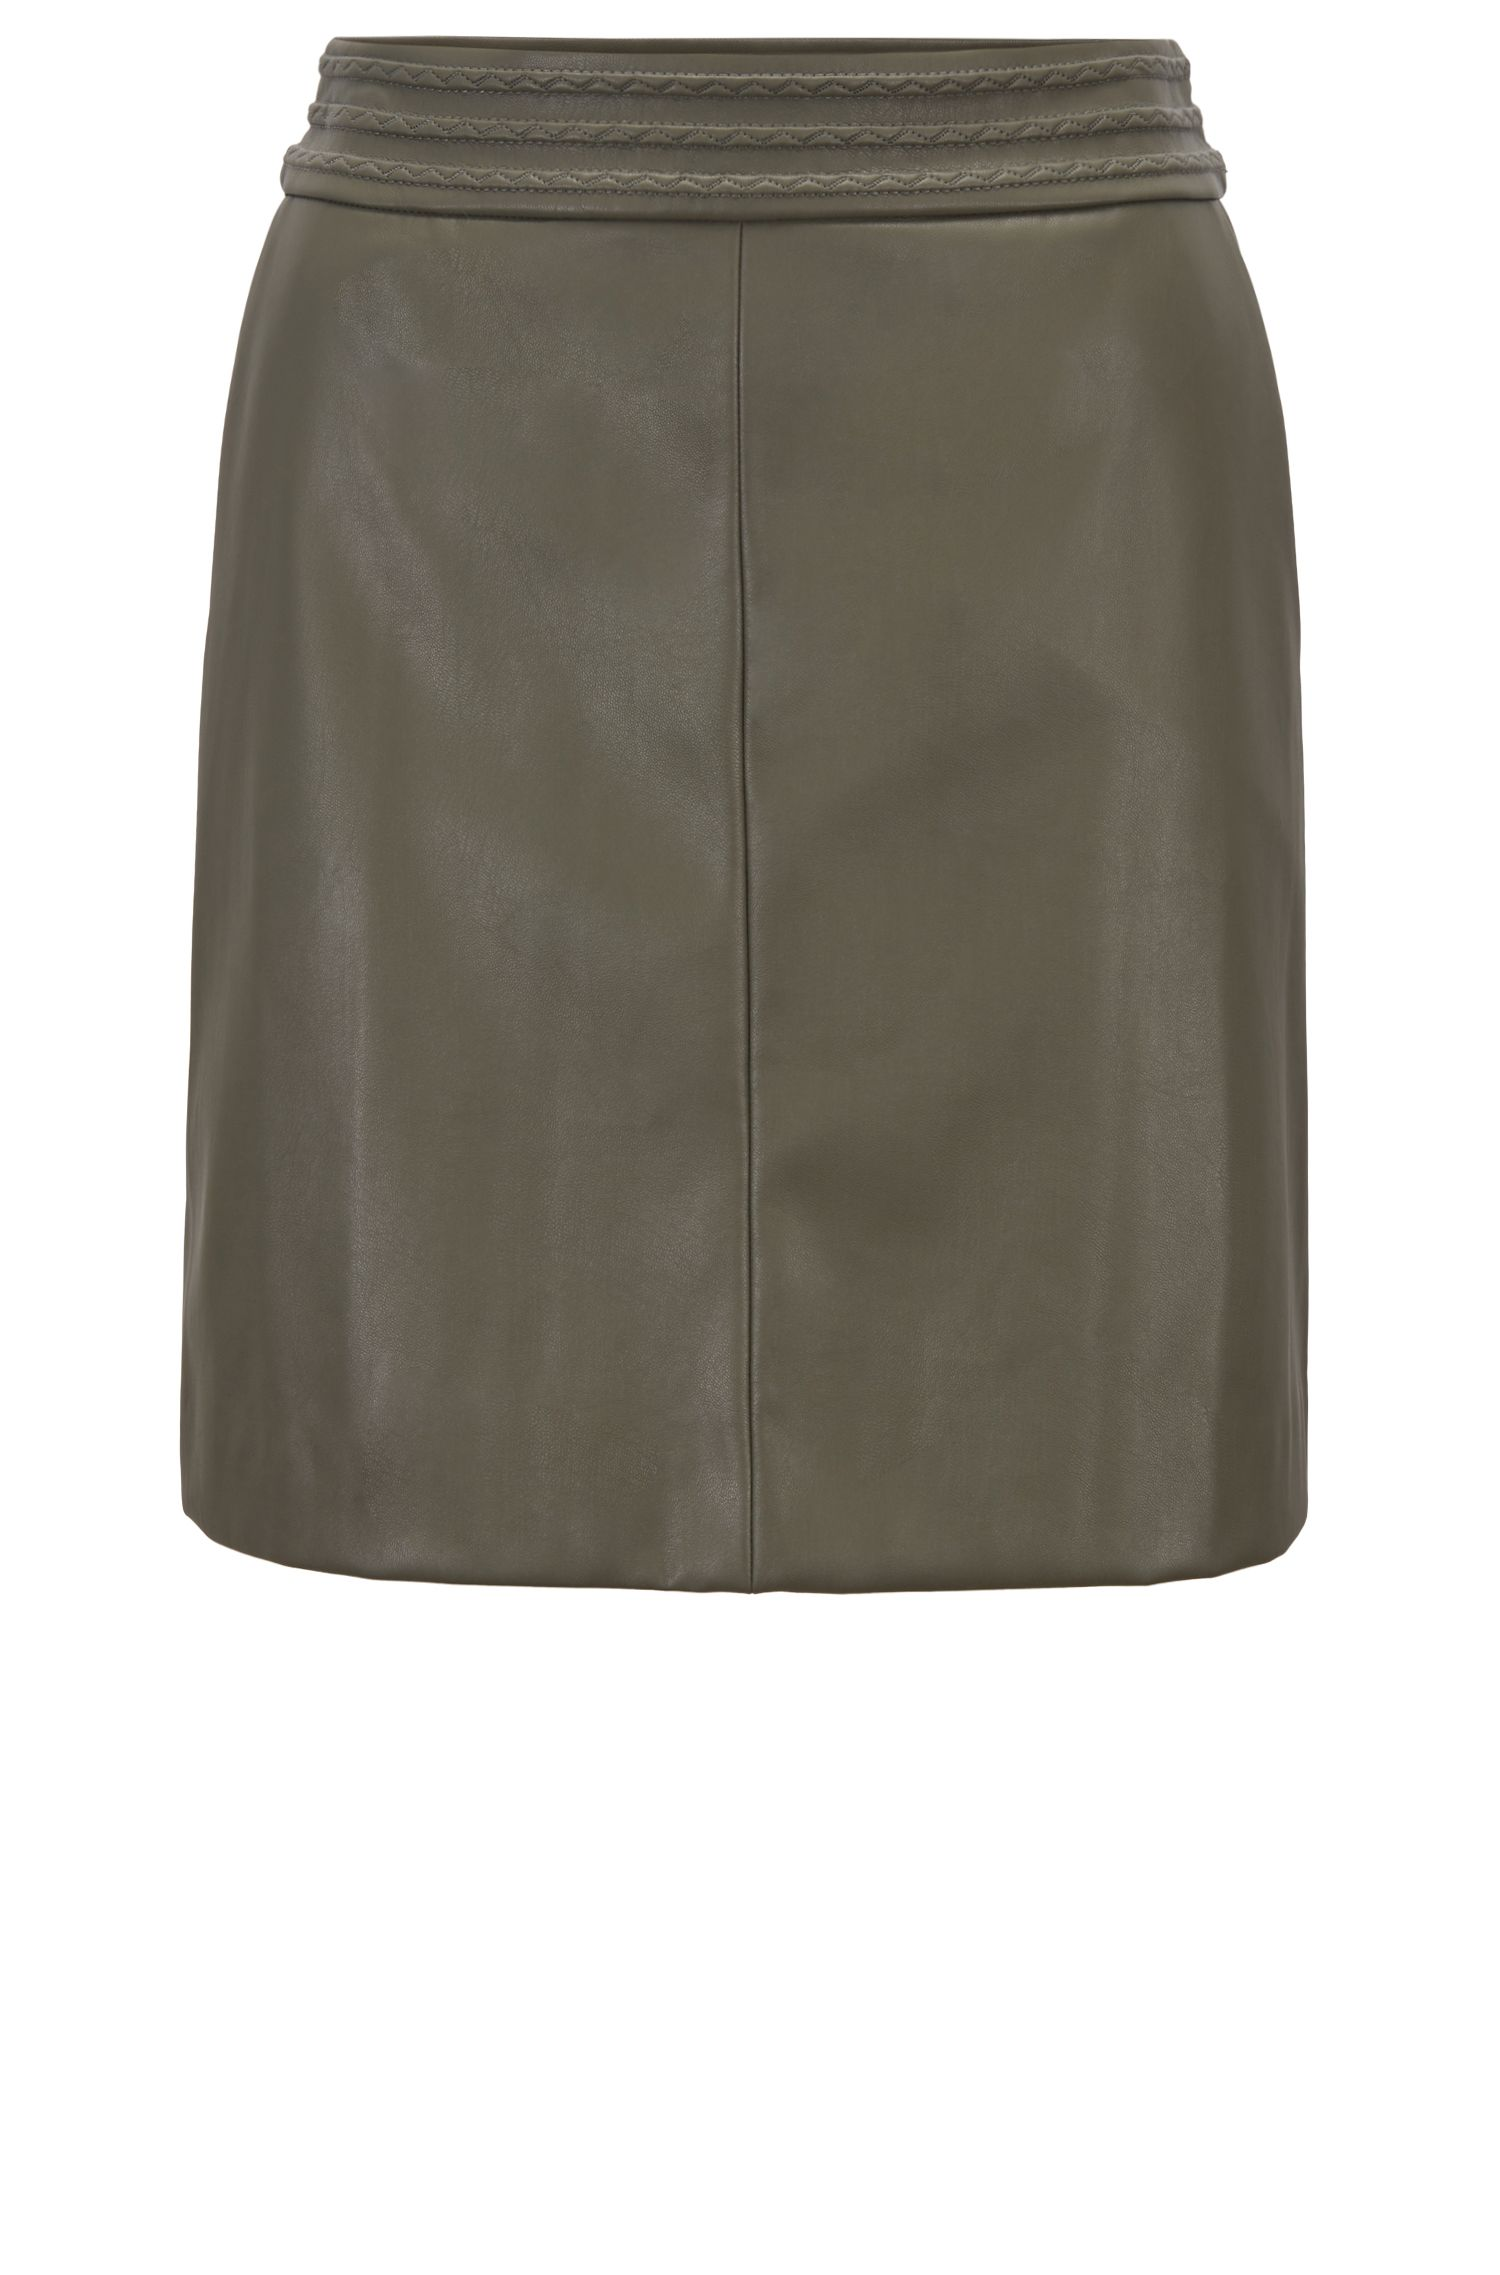 A-line miniskirt in faux leather with embroidery detailing, Khaki